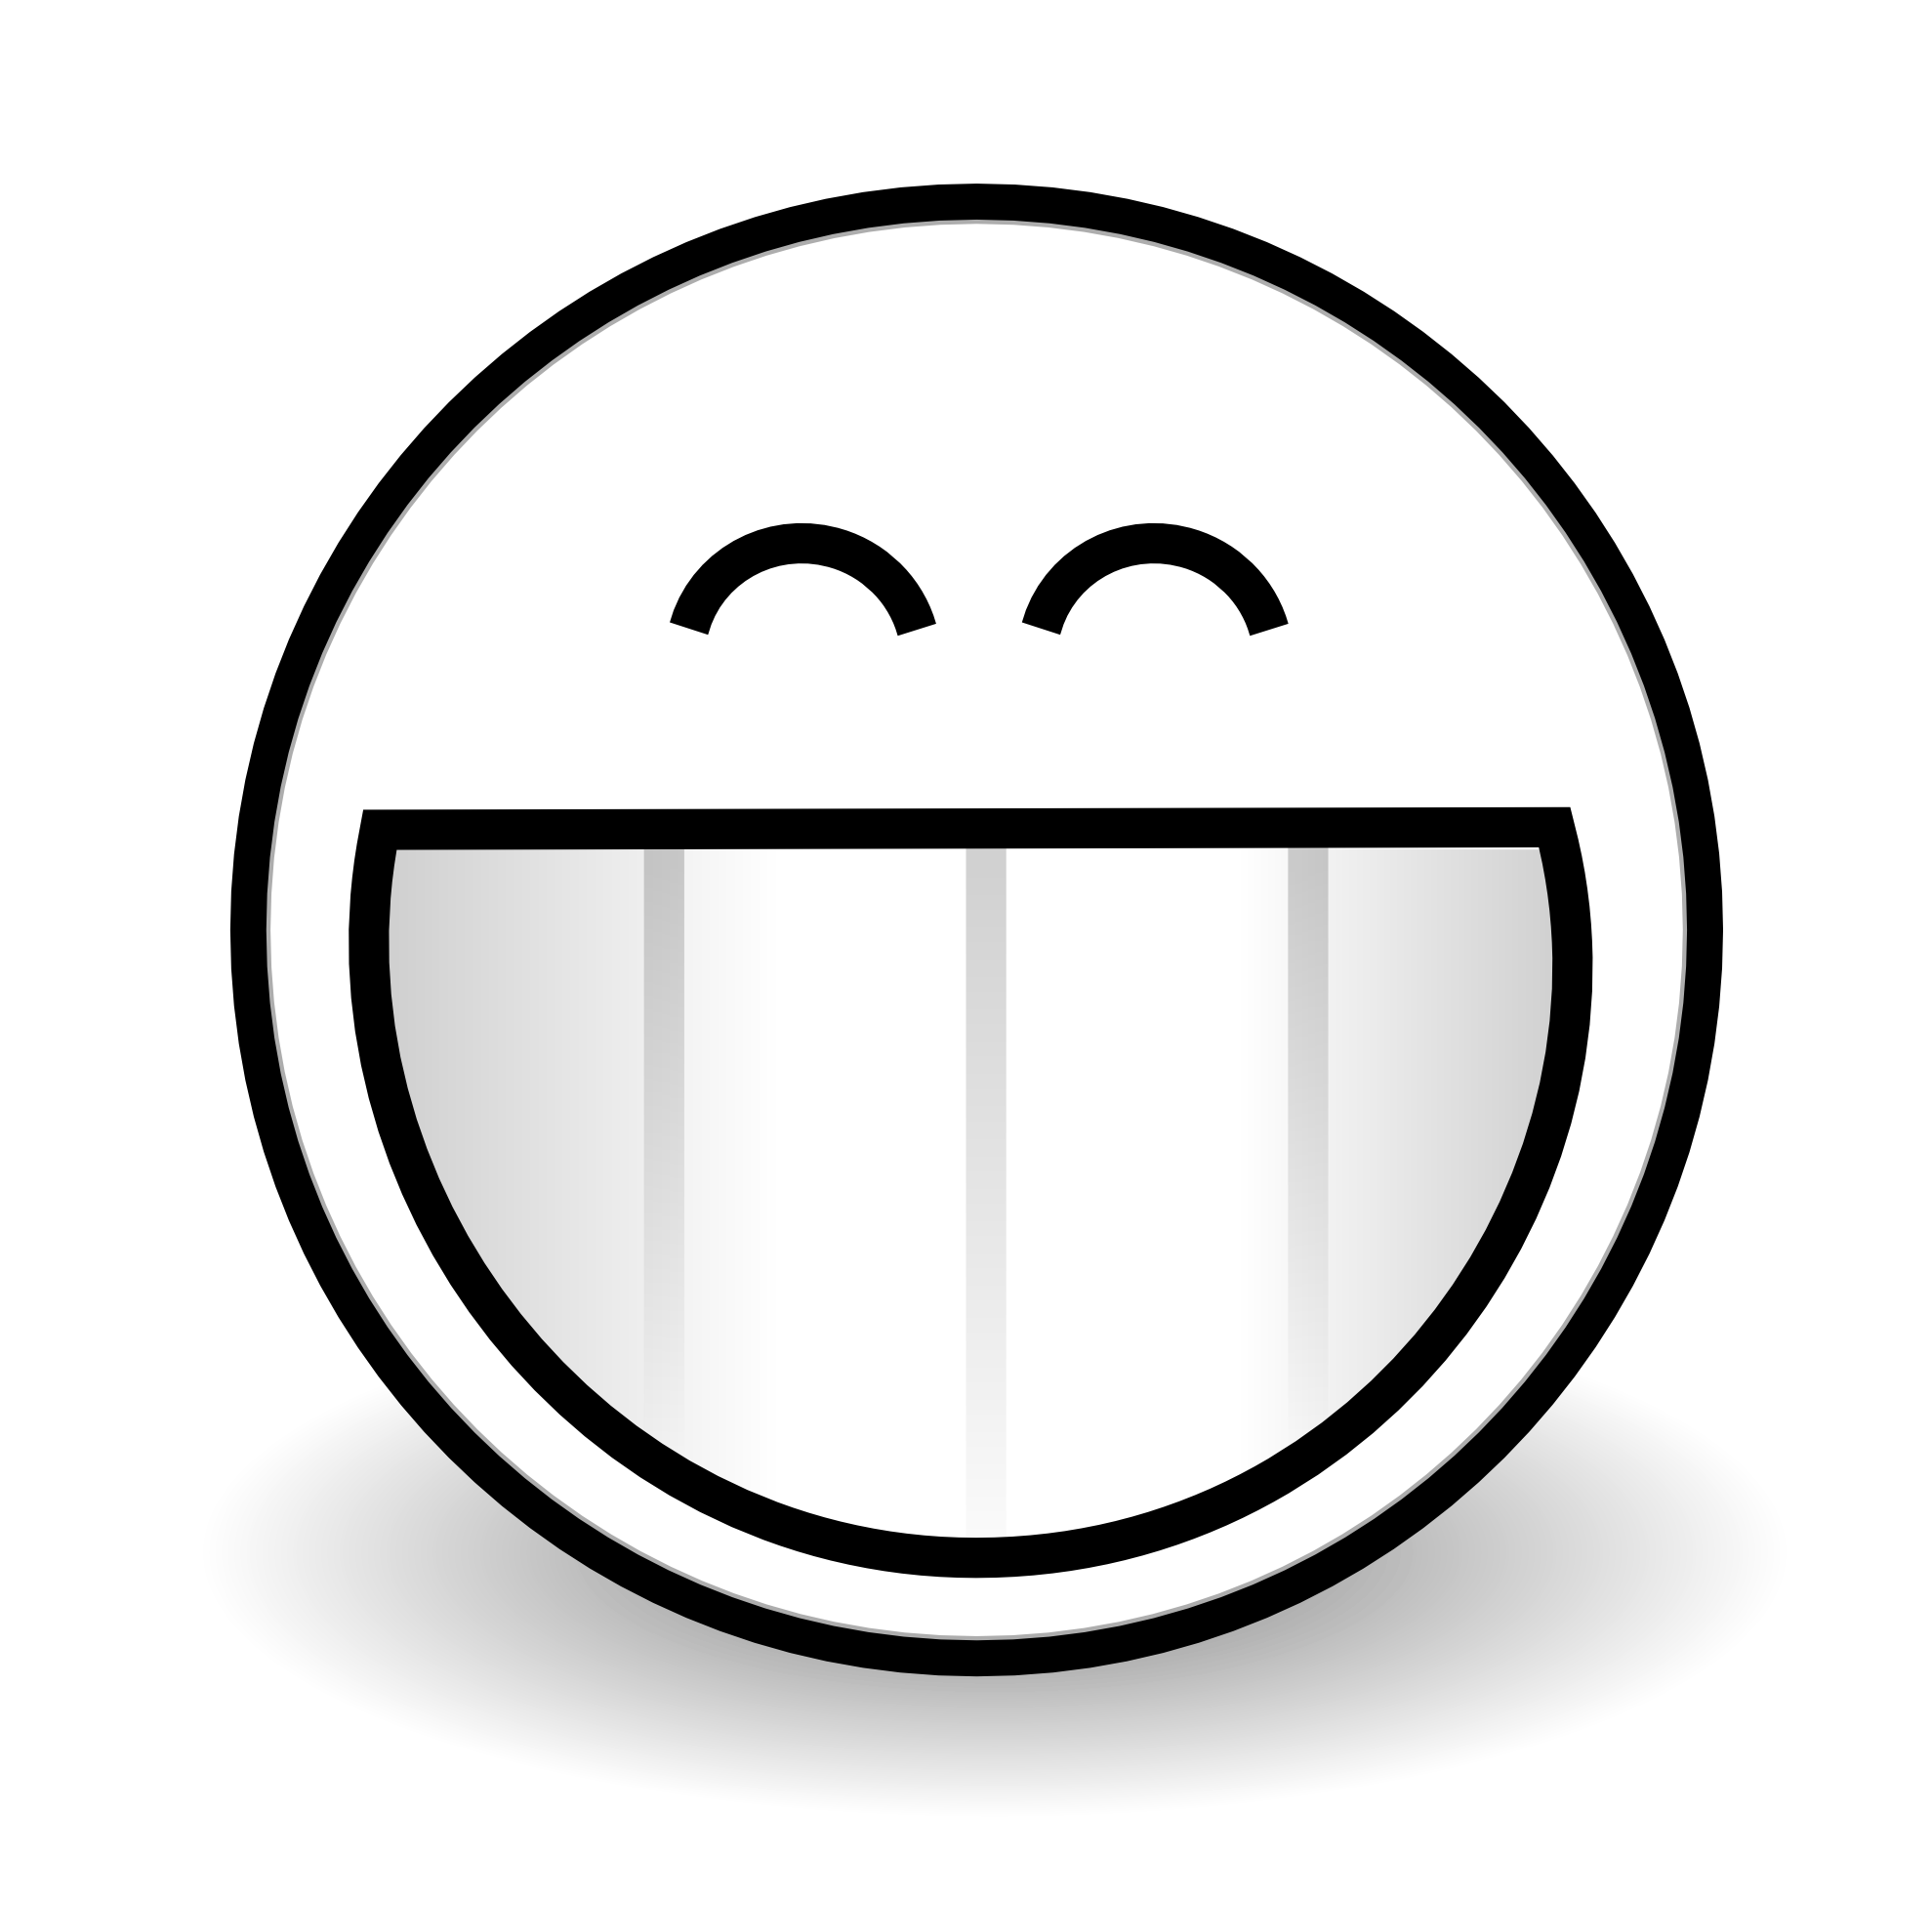 1979x1979 Smiley Face Black And White Smile Mouth Clipart